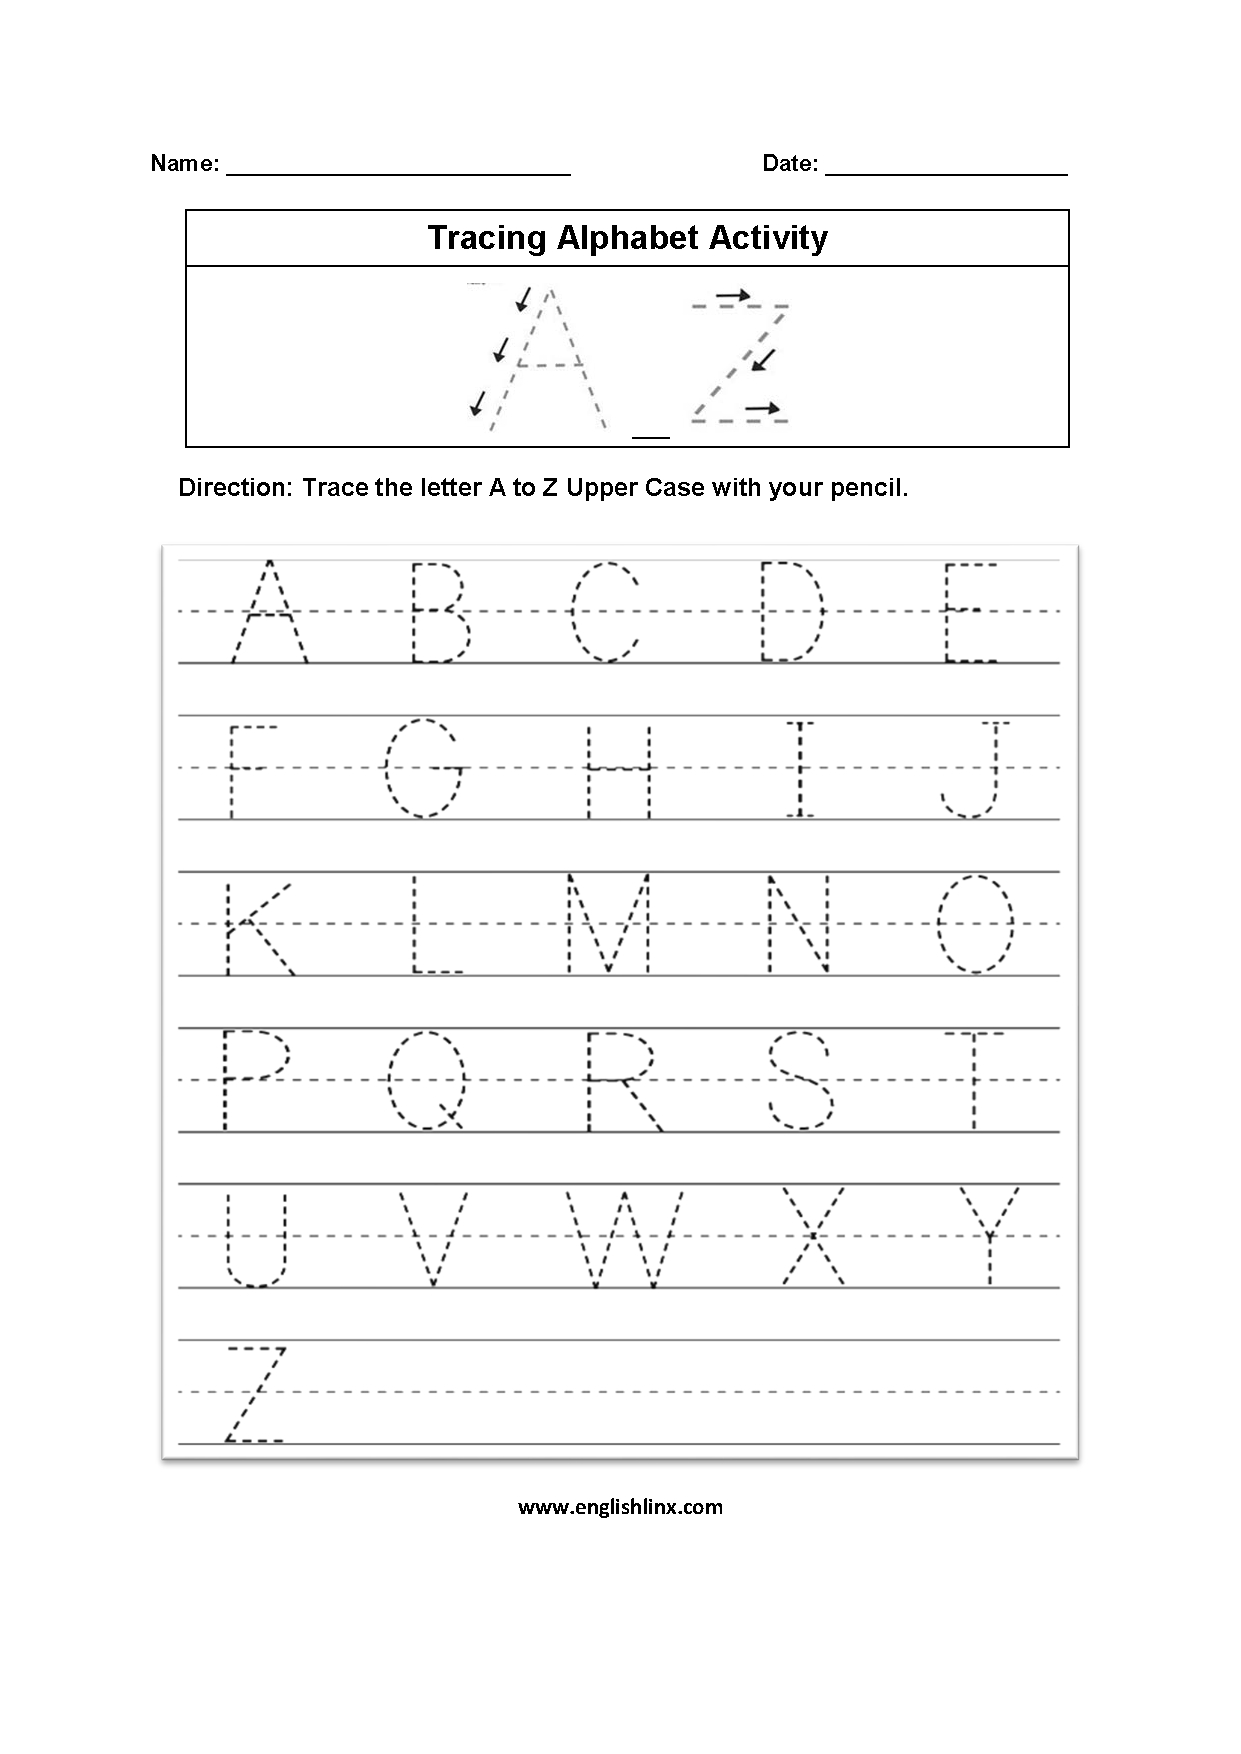 Englishlinx | Alphabet Worksheets pertaining to Alphabet Worksheets Esl Pdf